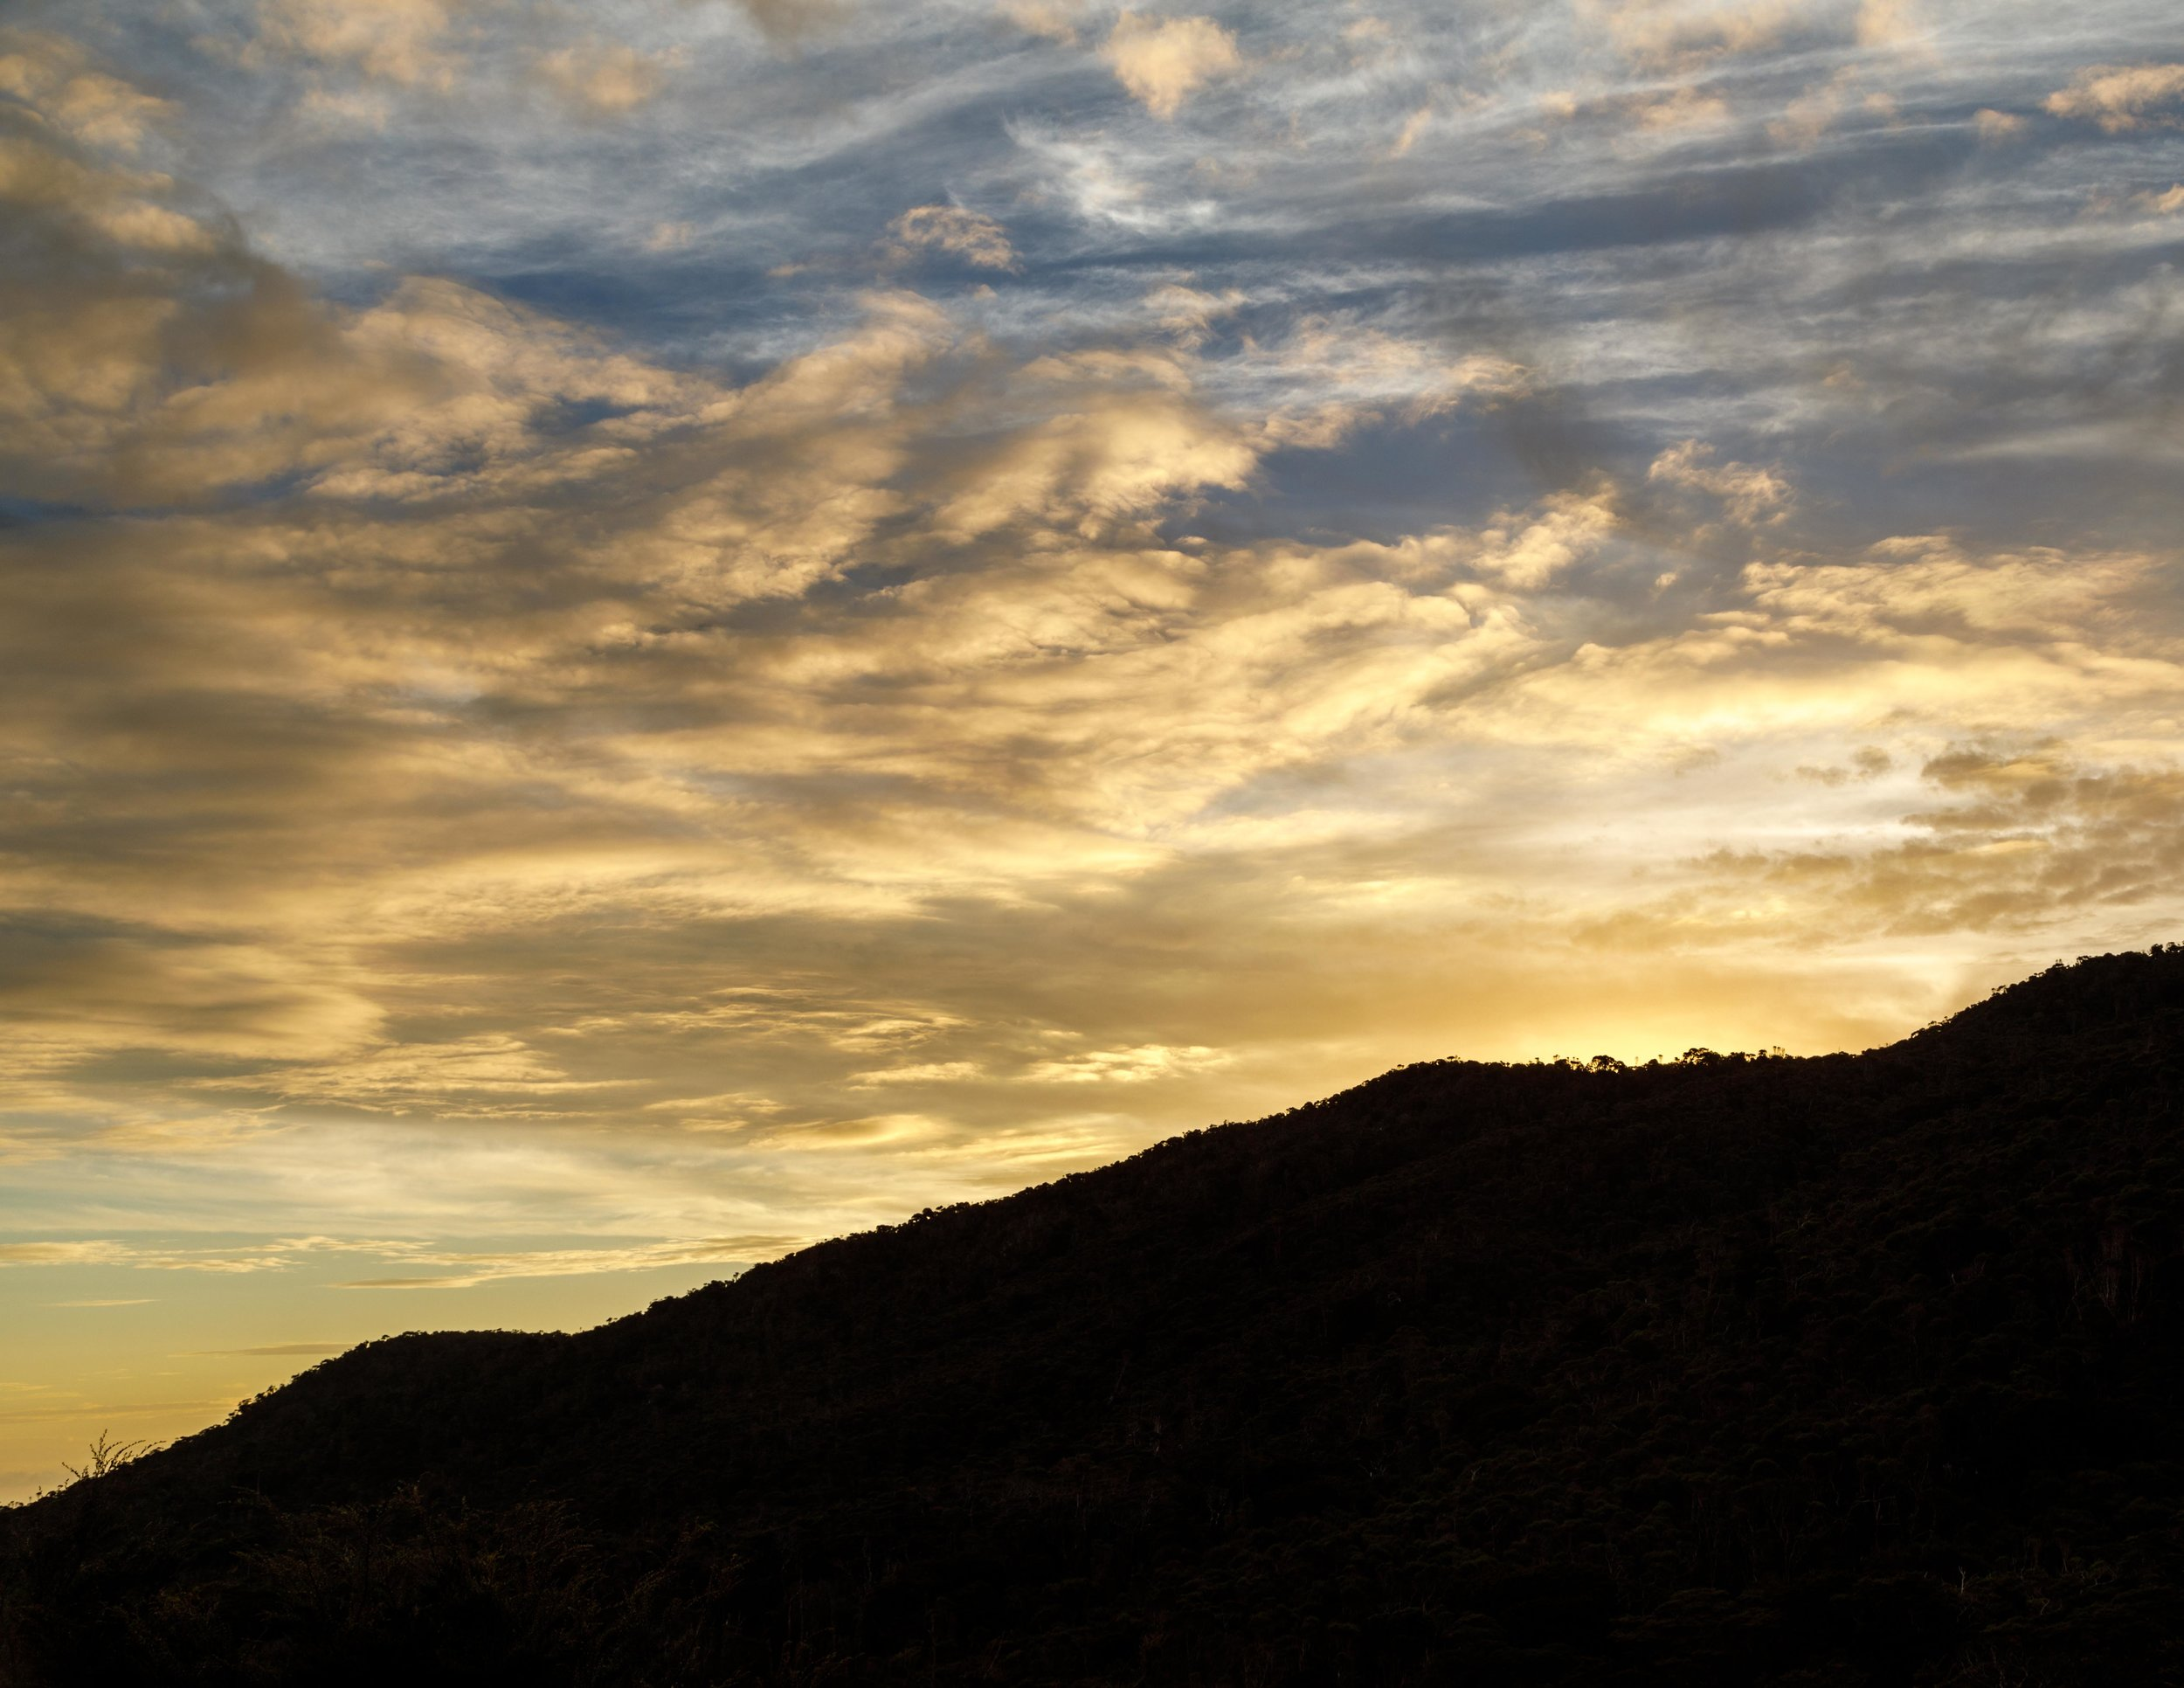 Sunset at James Mackay, Heaphy Track